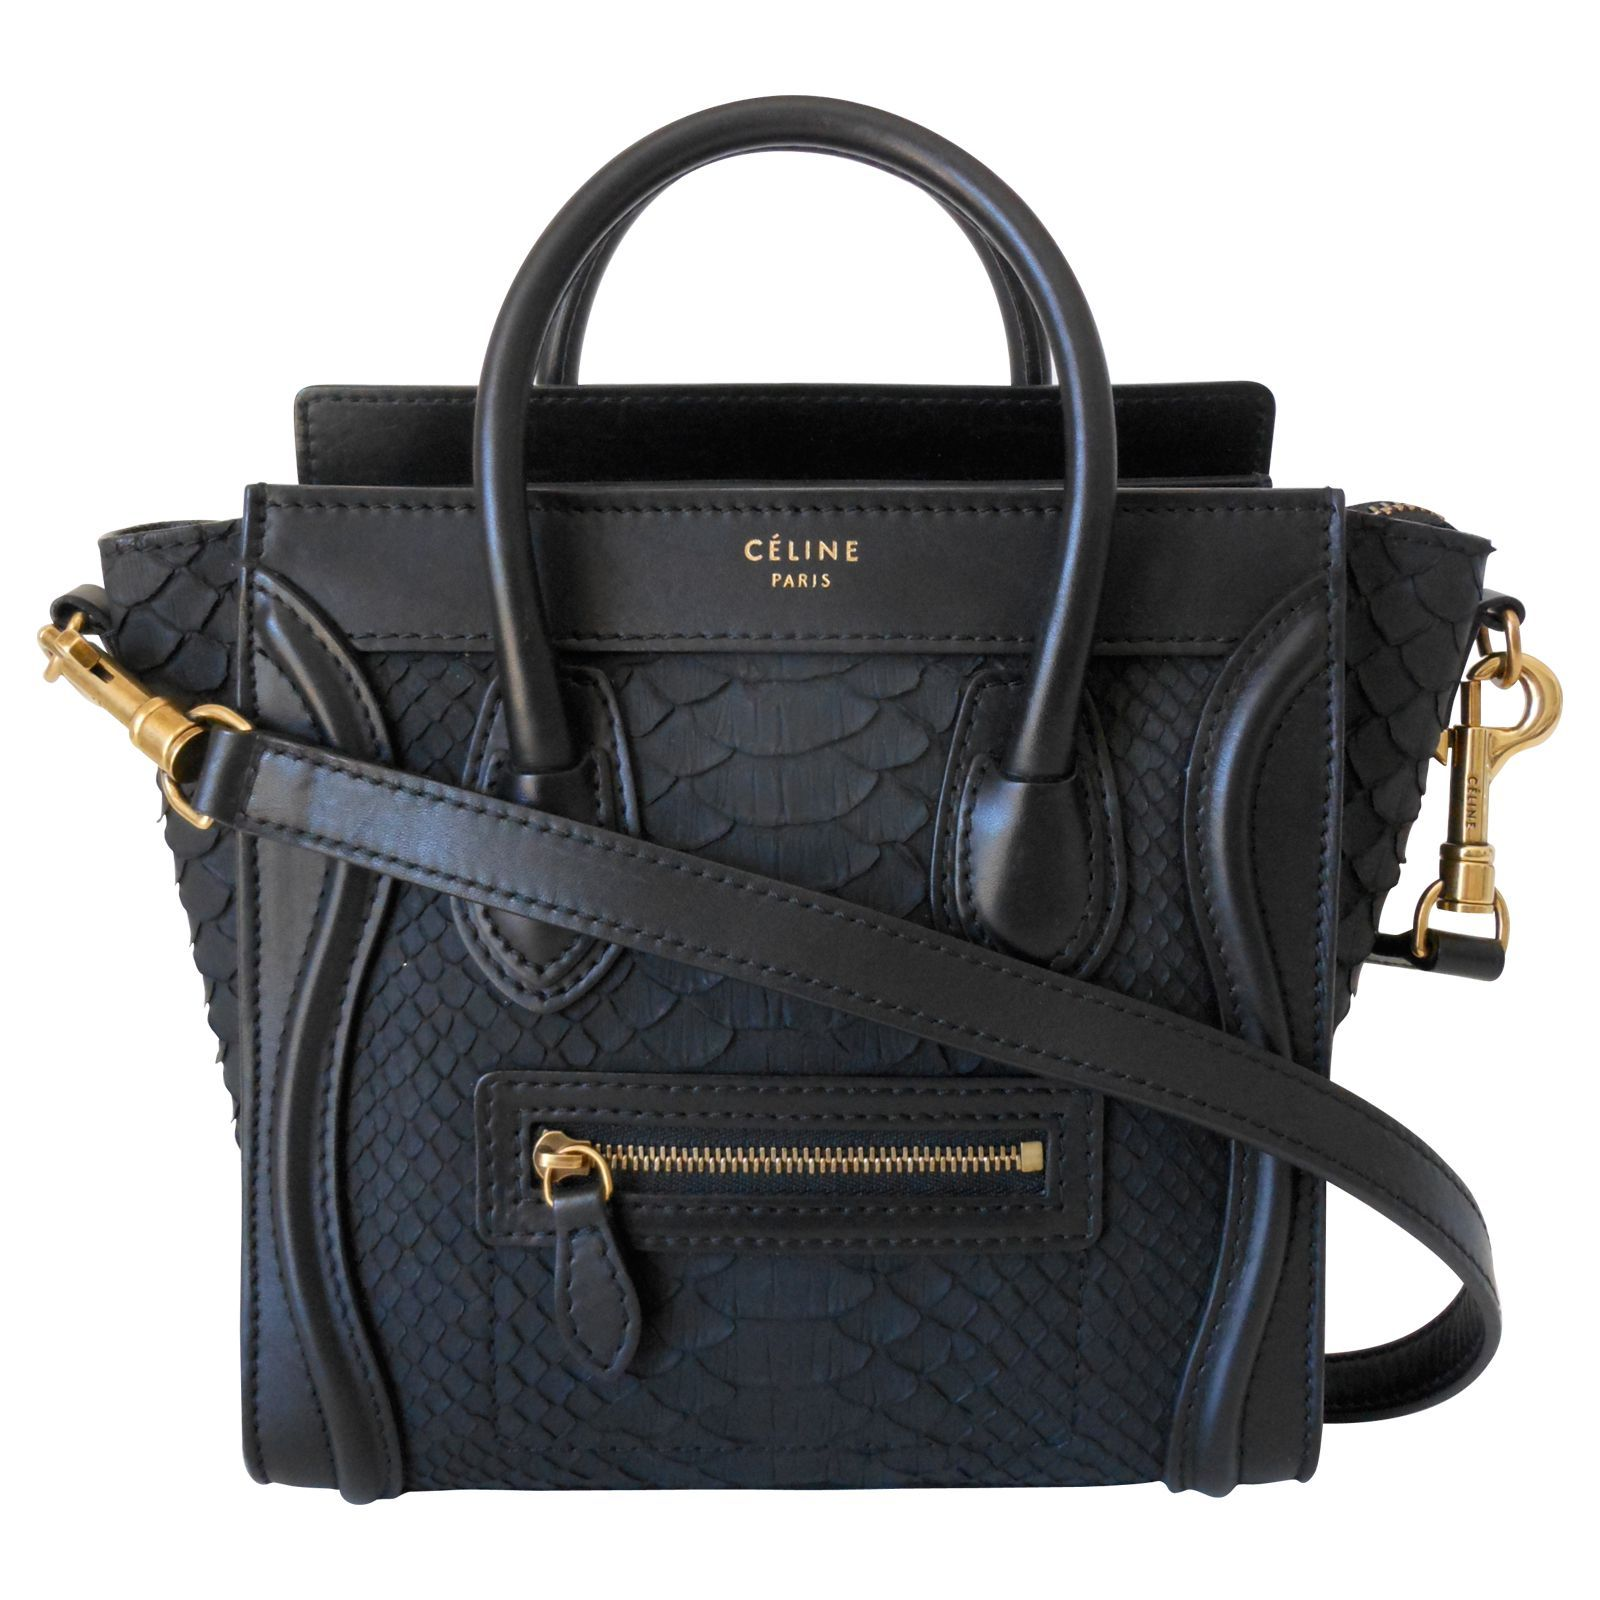 a2db157ea Bag Celine Luggage Nano model Rare piece in python and black leather - gold  jewelery Double leather handle for Handbag - with removable shoulder strap  ...